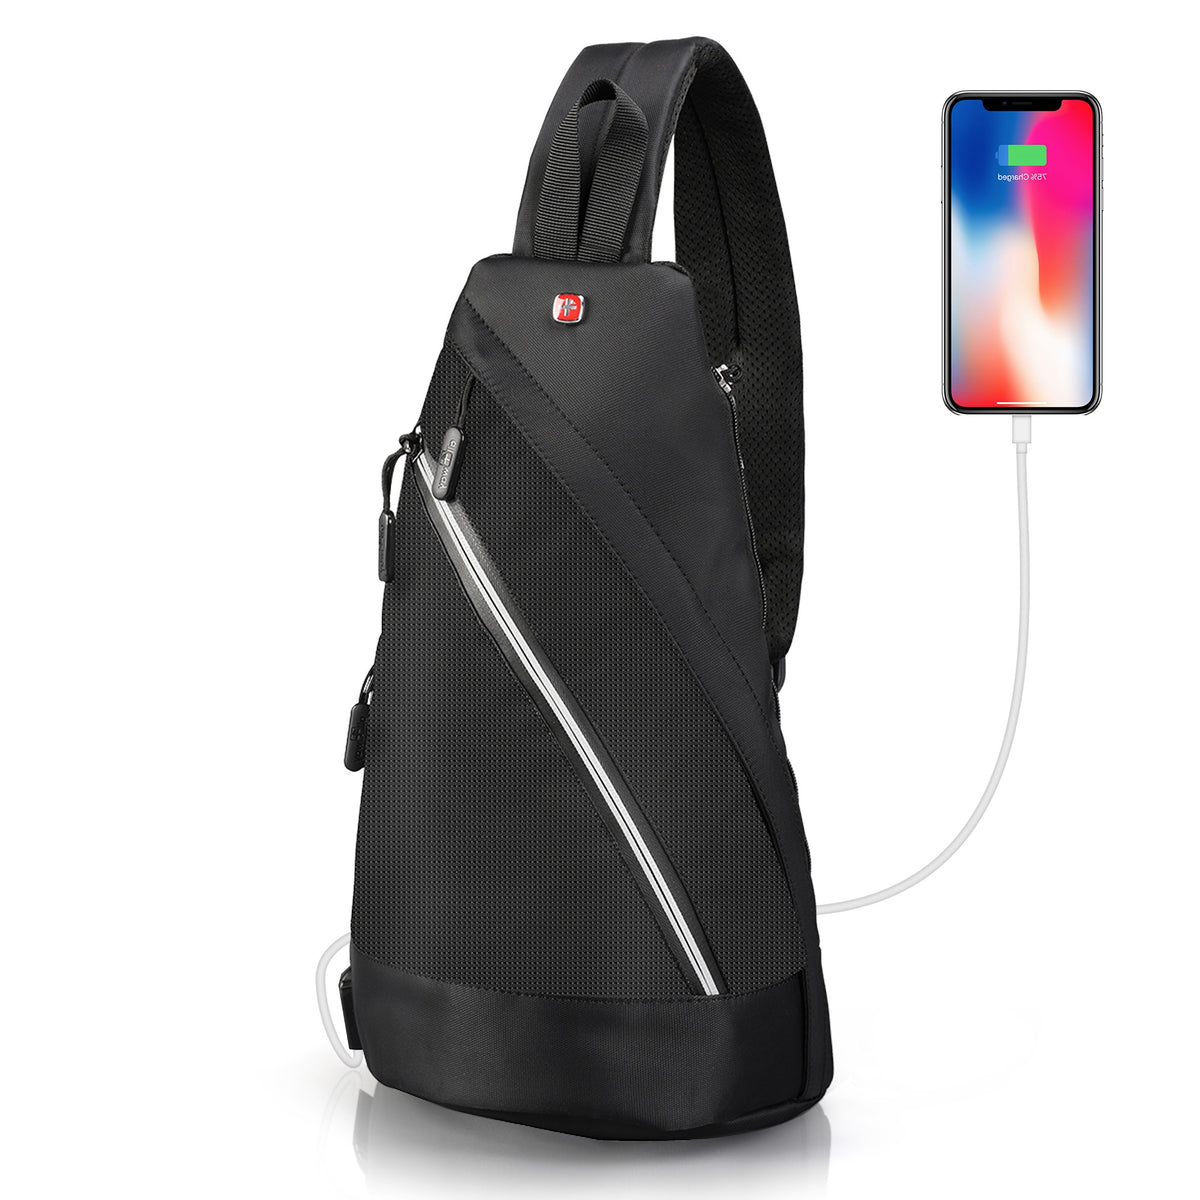 Modern laptop and ipad bag for men and women - crossbody sling backpack with usb charger port. Onestrap antitheft slingbag  with  rfid  pocket and padded computer sleeve. Slim, compact and stylish, perfect for travel, everyday citylife and casual events.